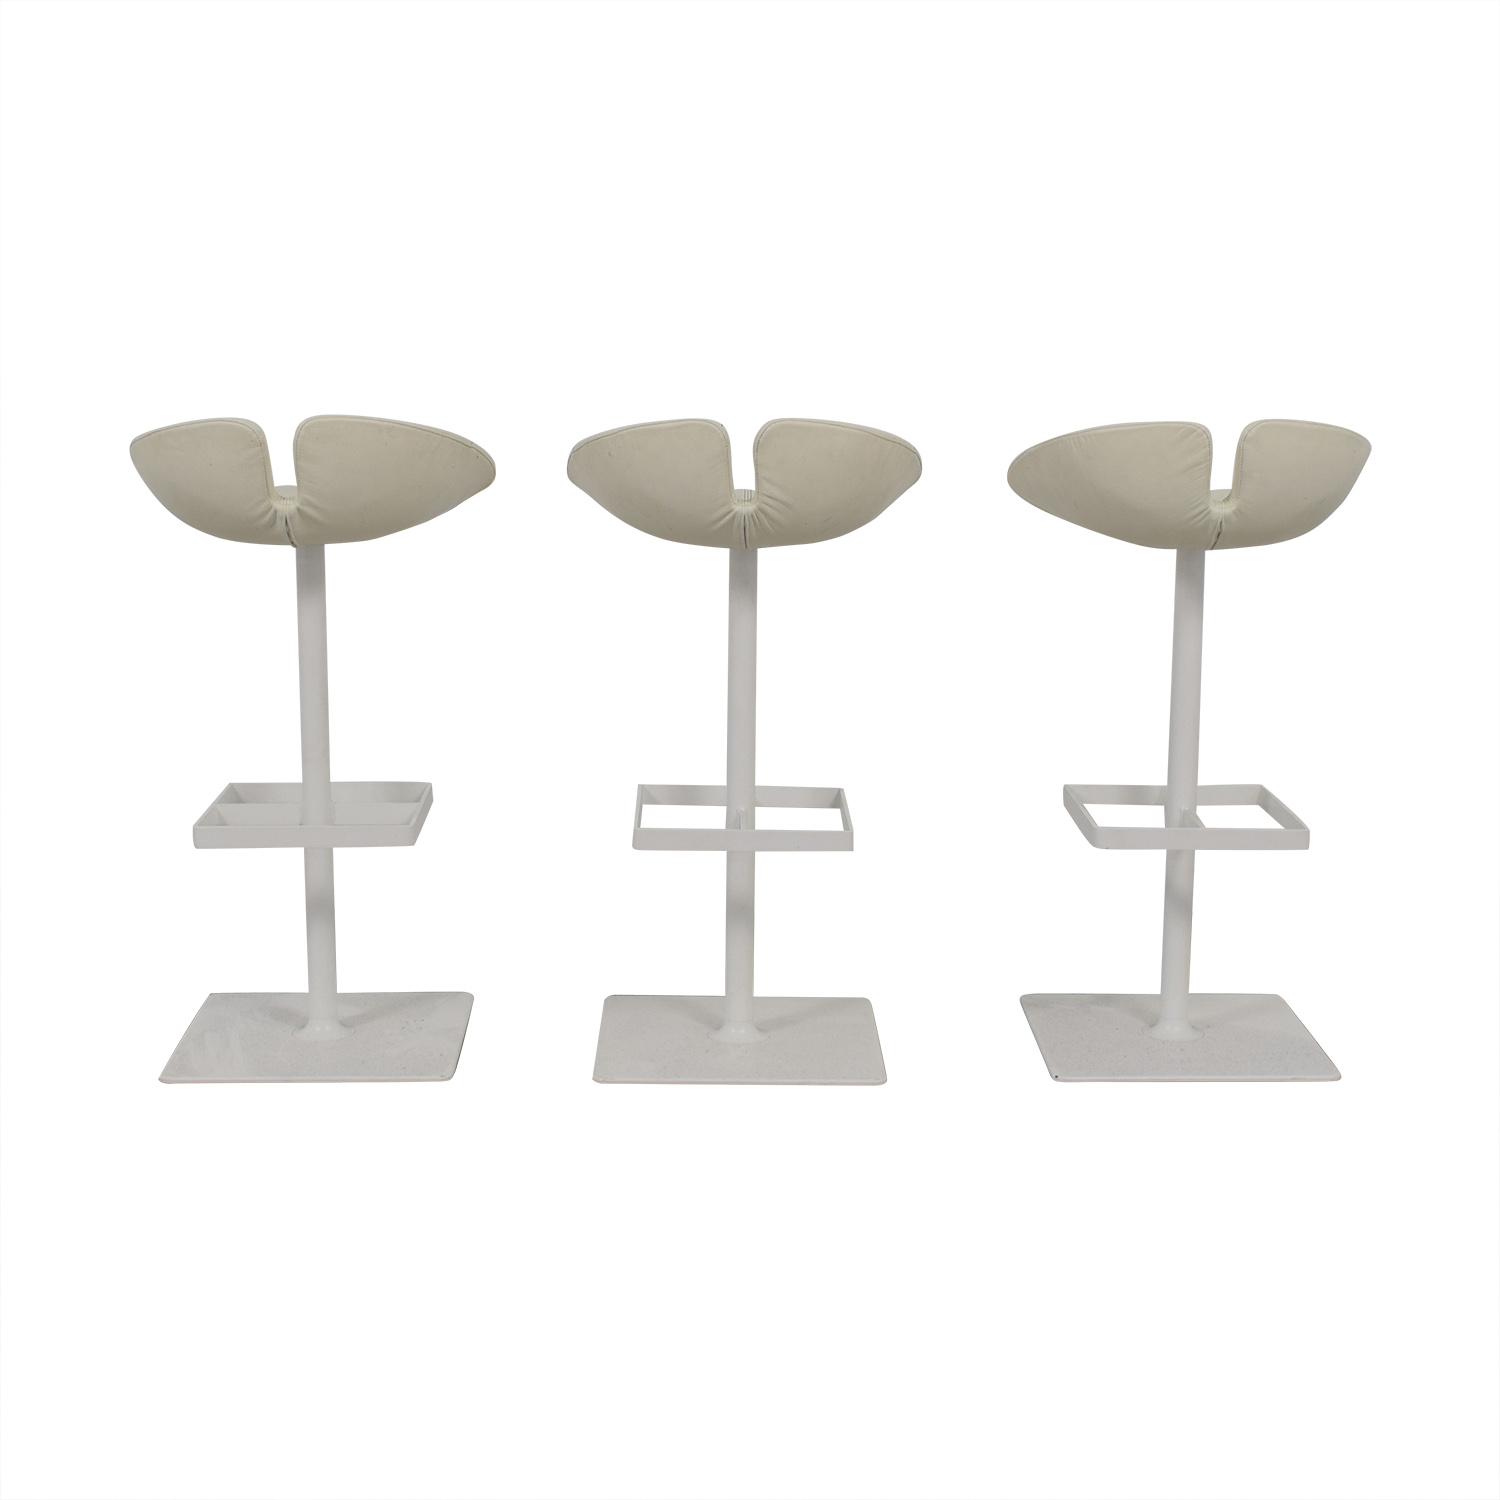 Moroso Moroso Fjord White Leather Barstools discount